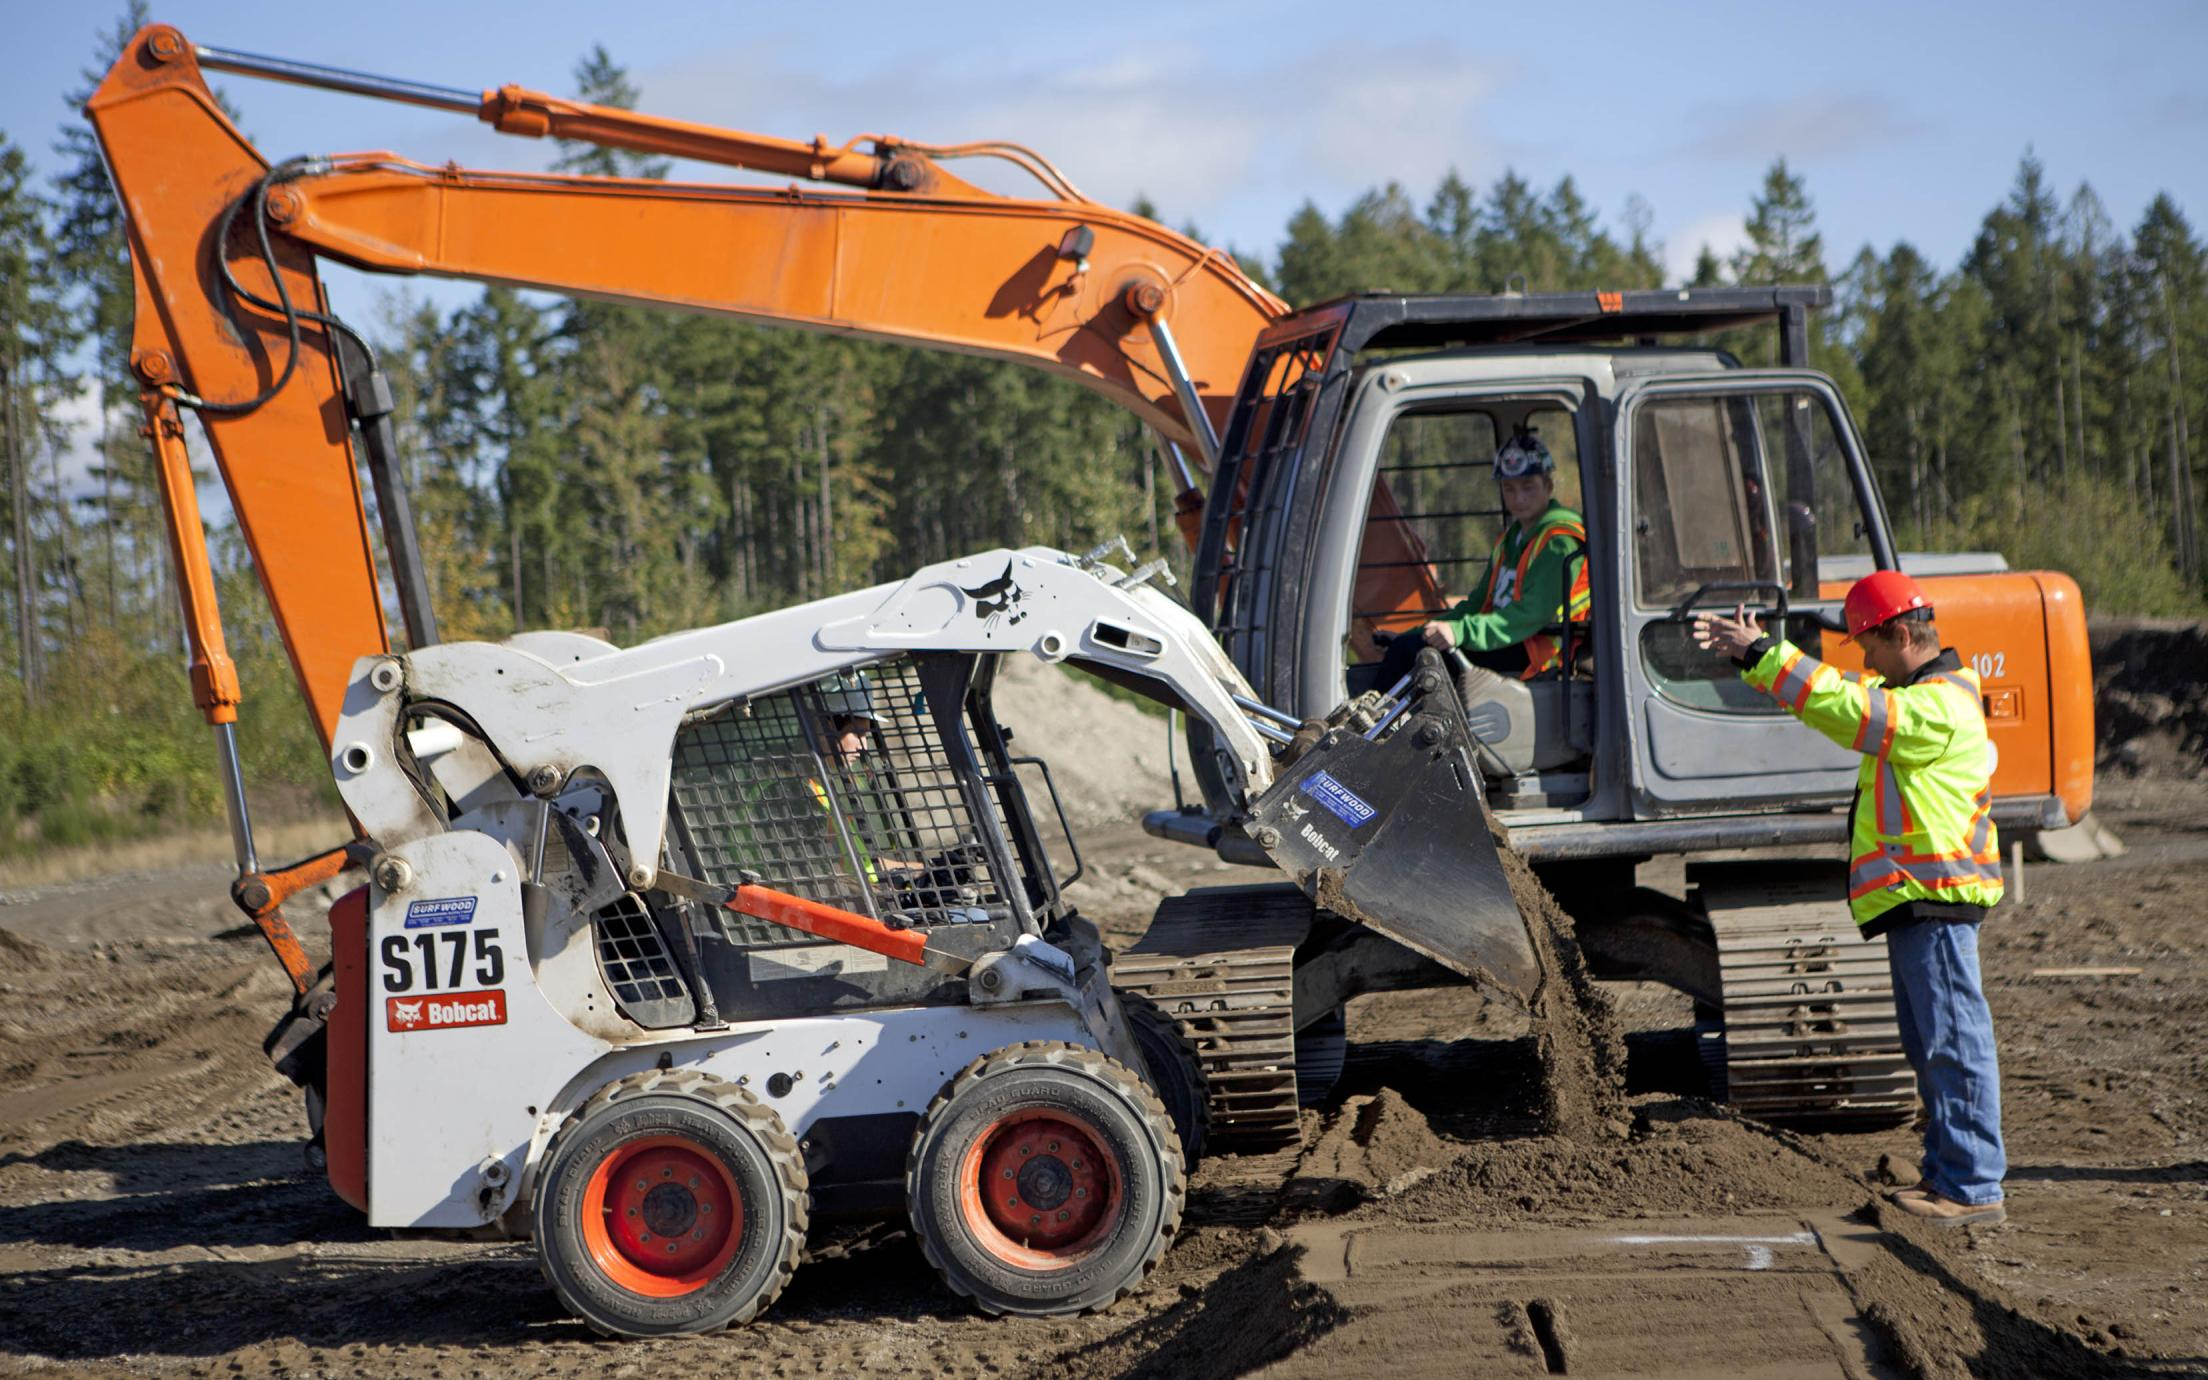 VIU's Heavy Equipment Operator courses' students working on construction sites